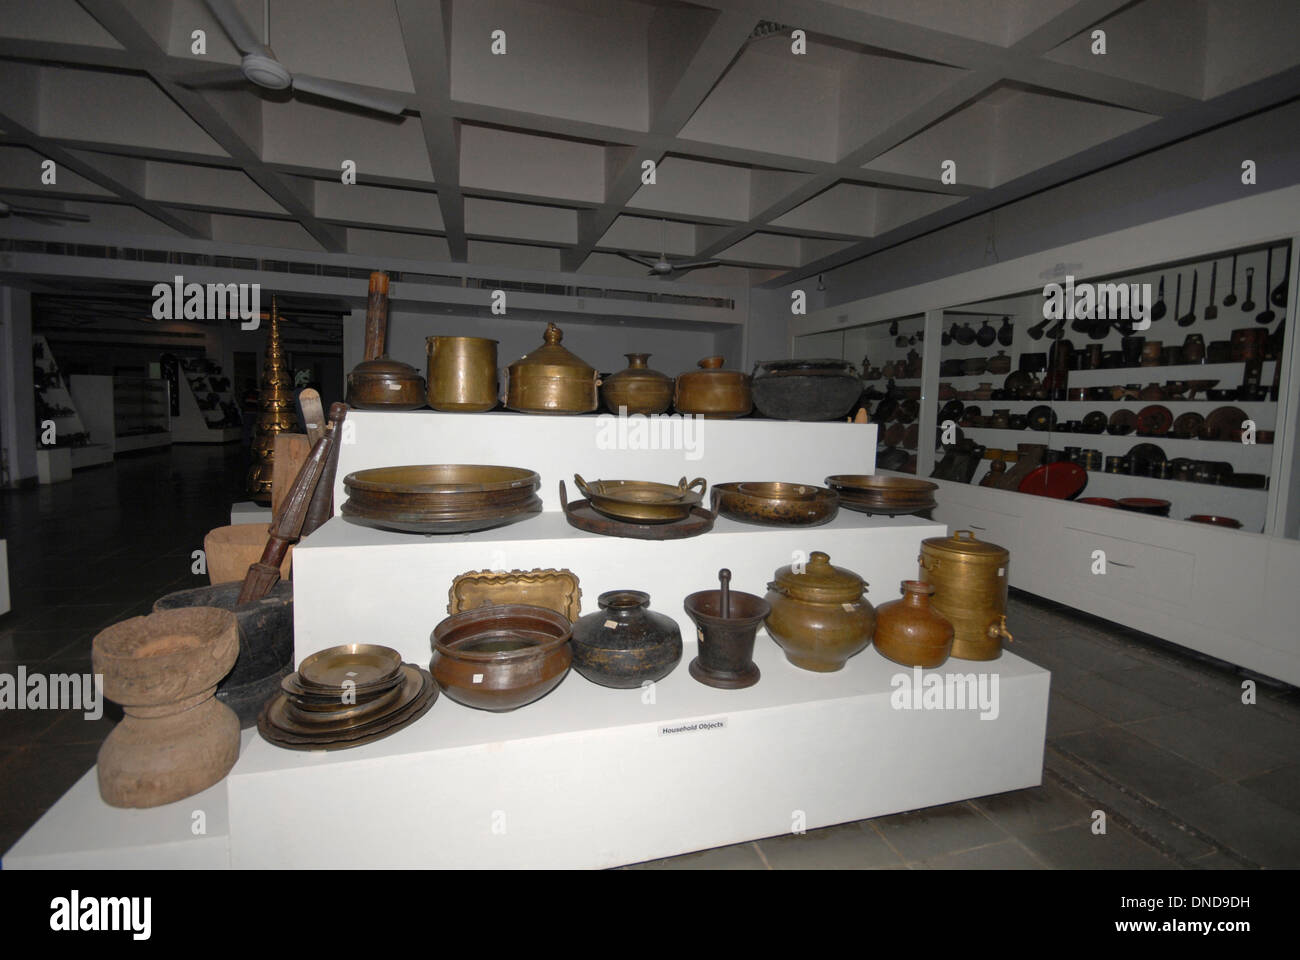 Exhibition of tribal vessels. Manav Sangrahalaya, Bhopal, Madhya Pradesh, India. - Stock Image